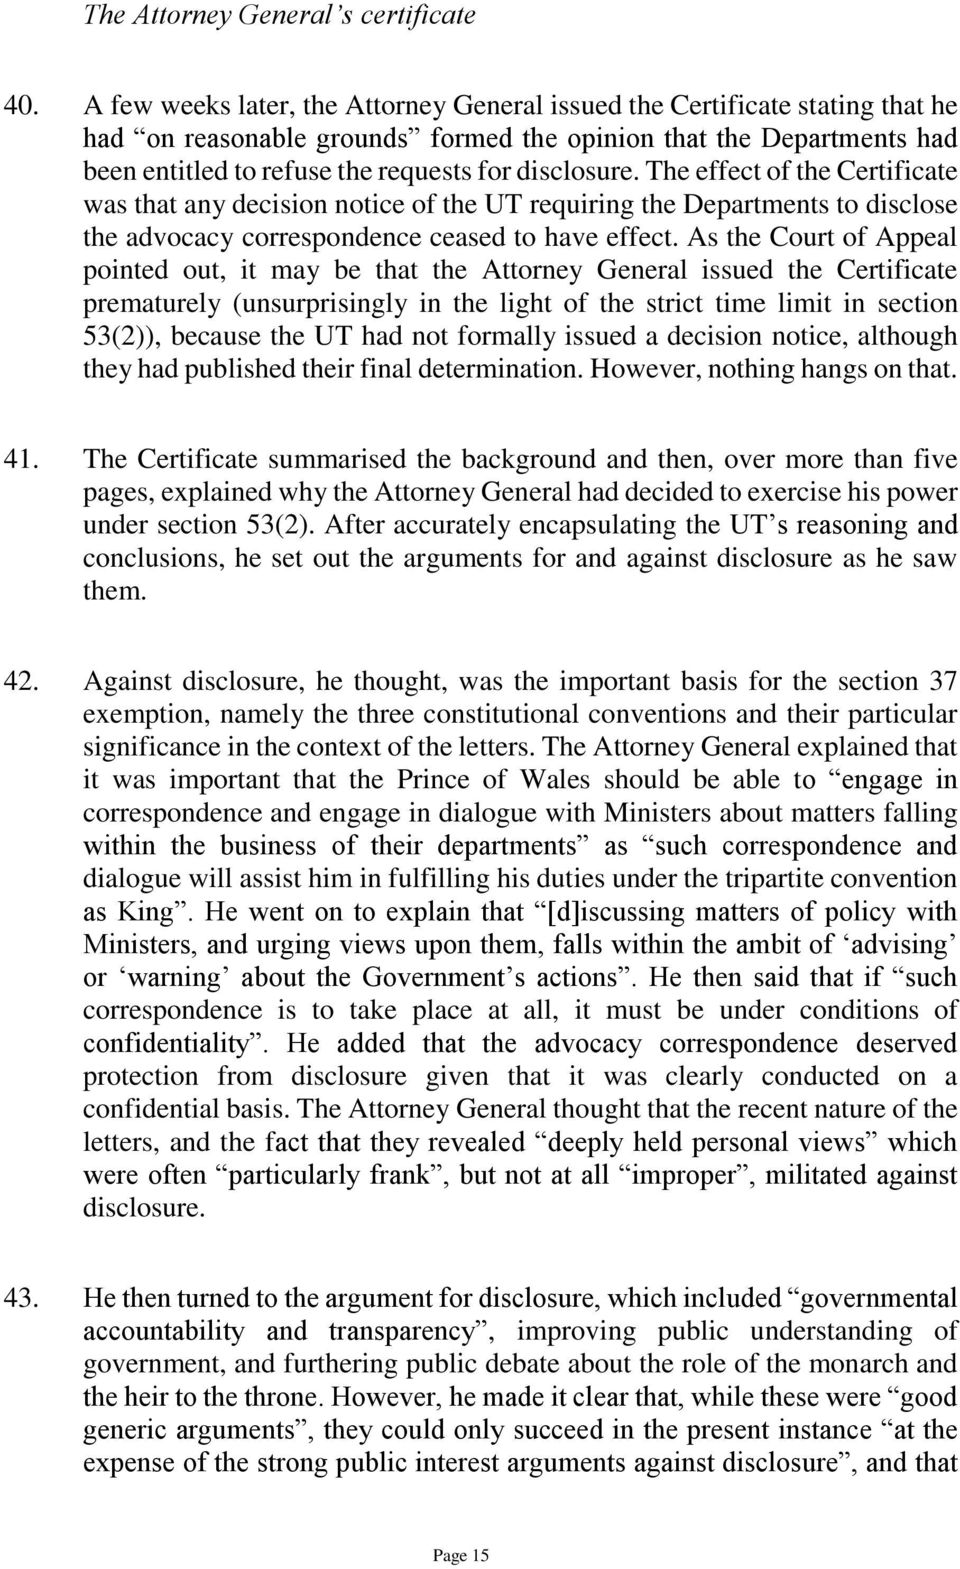 disclosure. The effect of the Certificate was that any decision notice of the UT requiring the Departments to disclose the advocacy correspondence ceased to have effect.